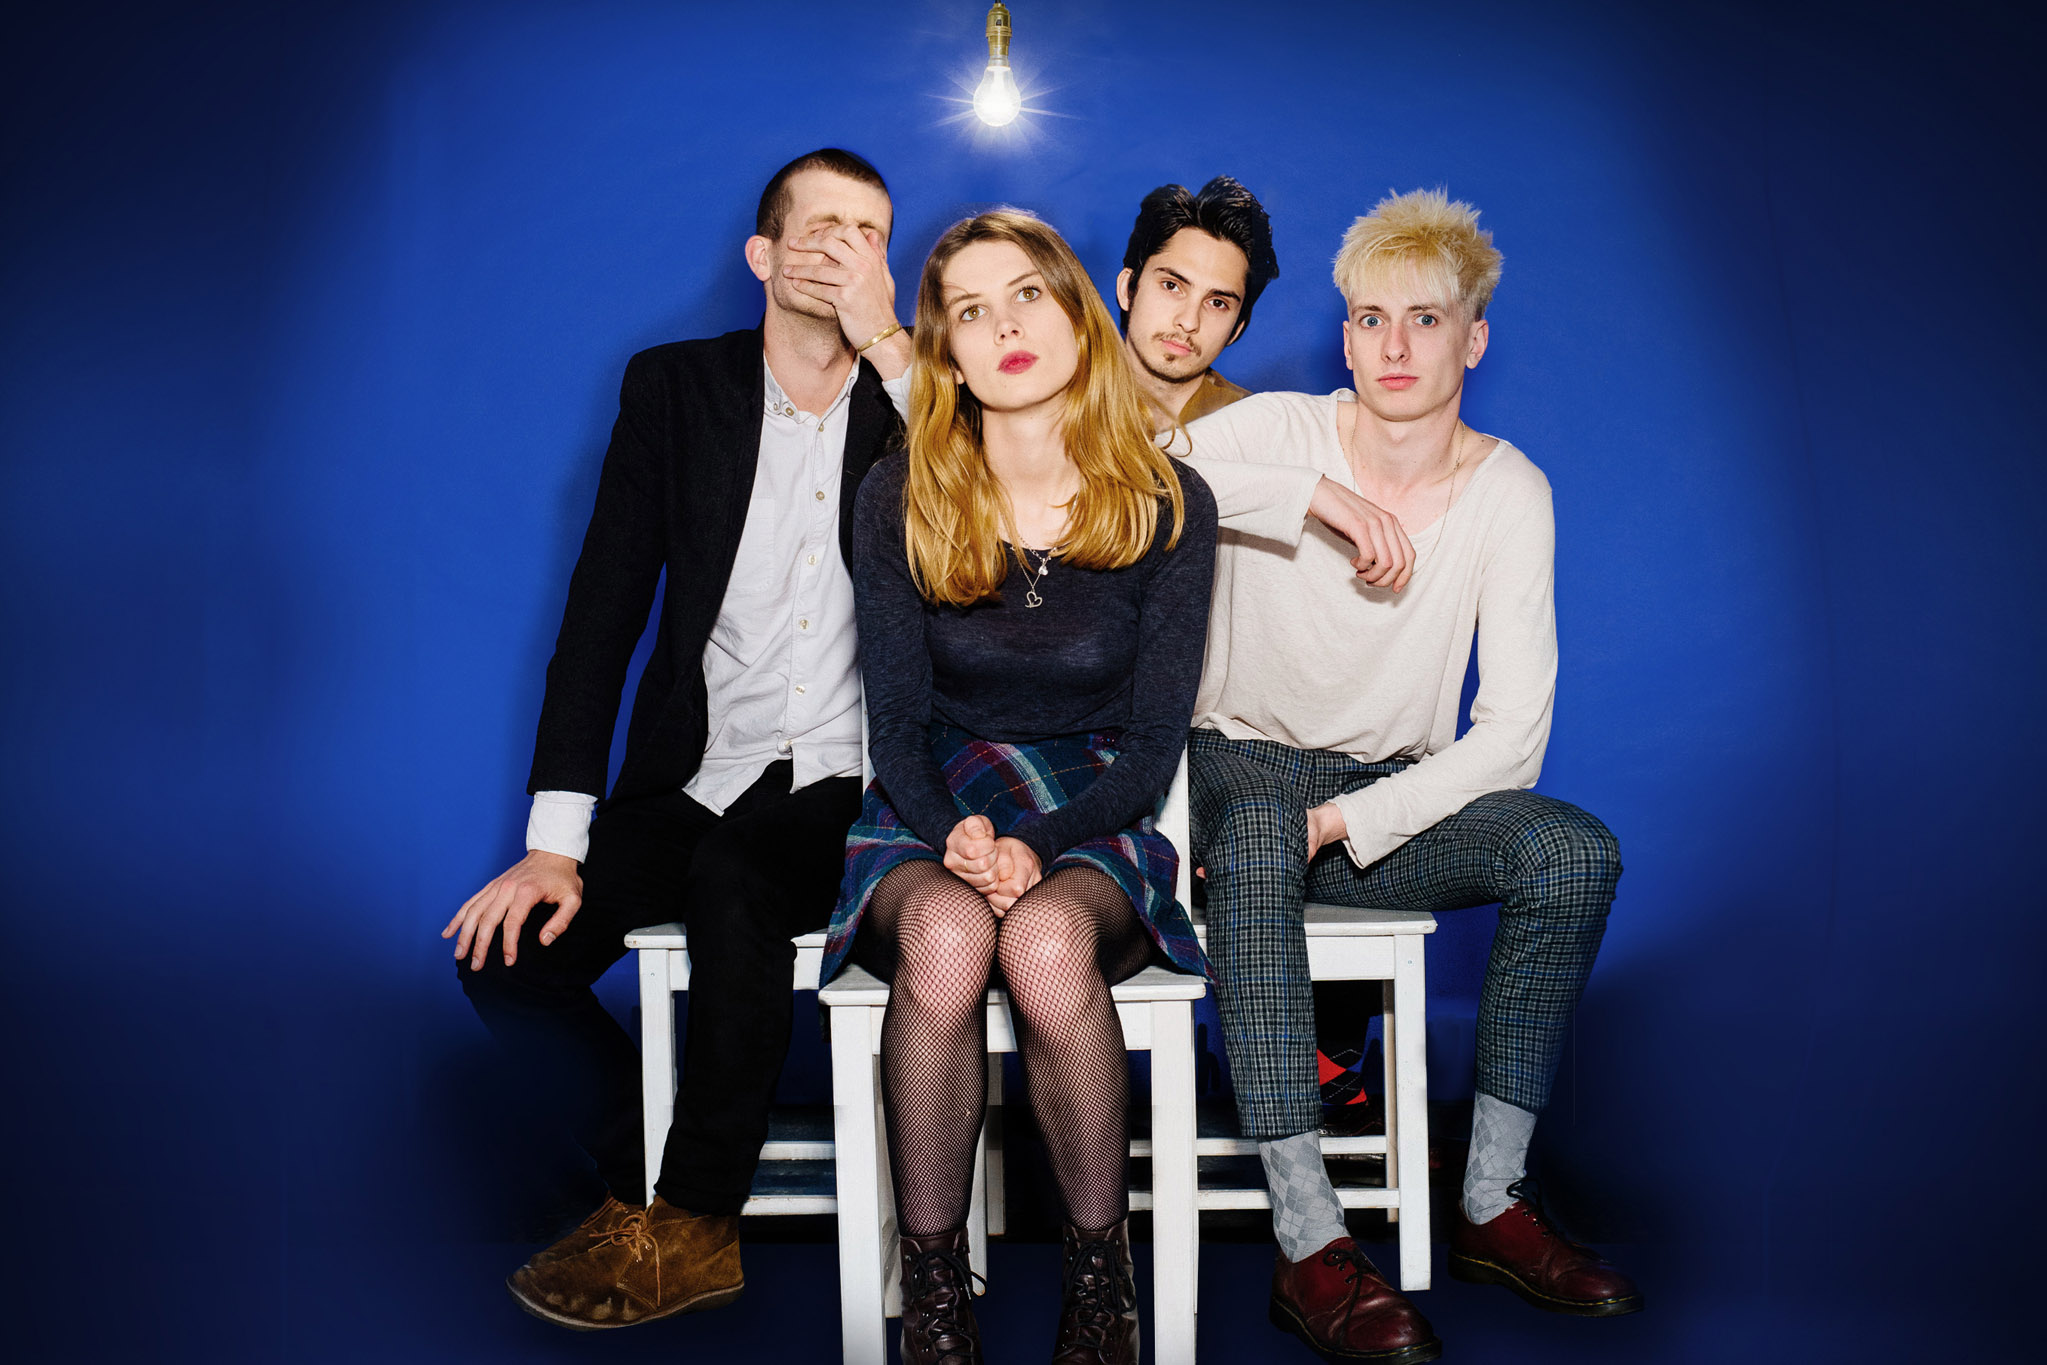 Wolf Alice: Next in line to the throne